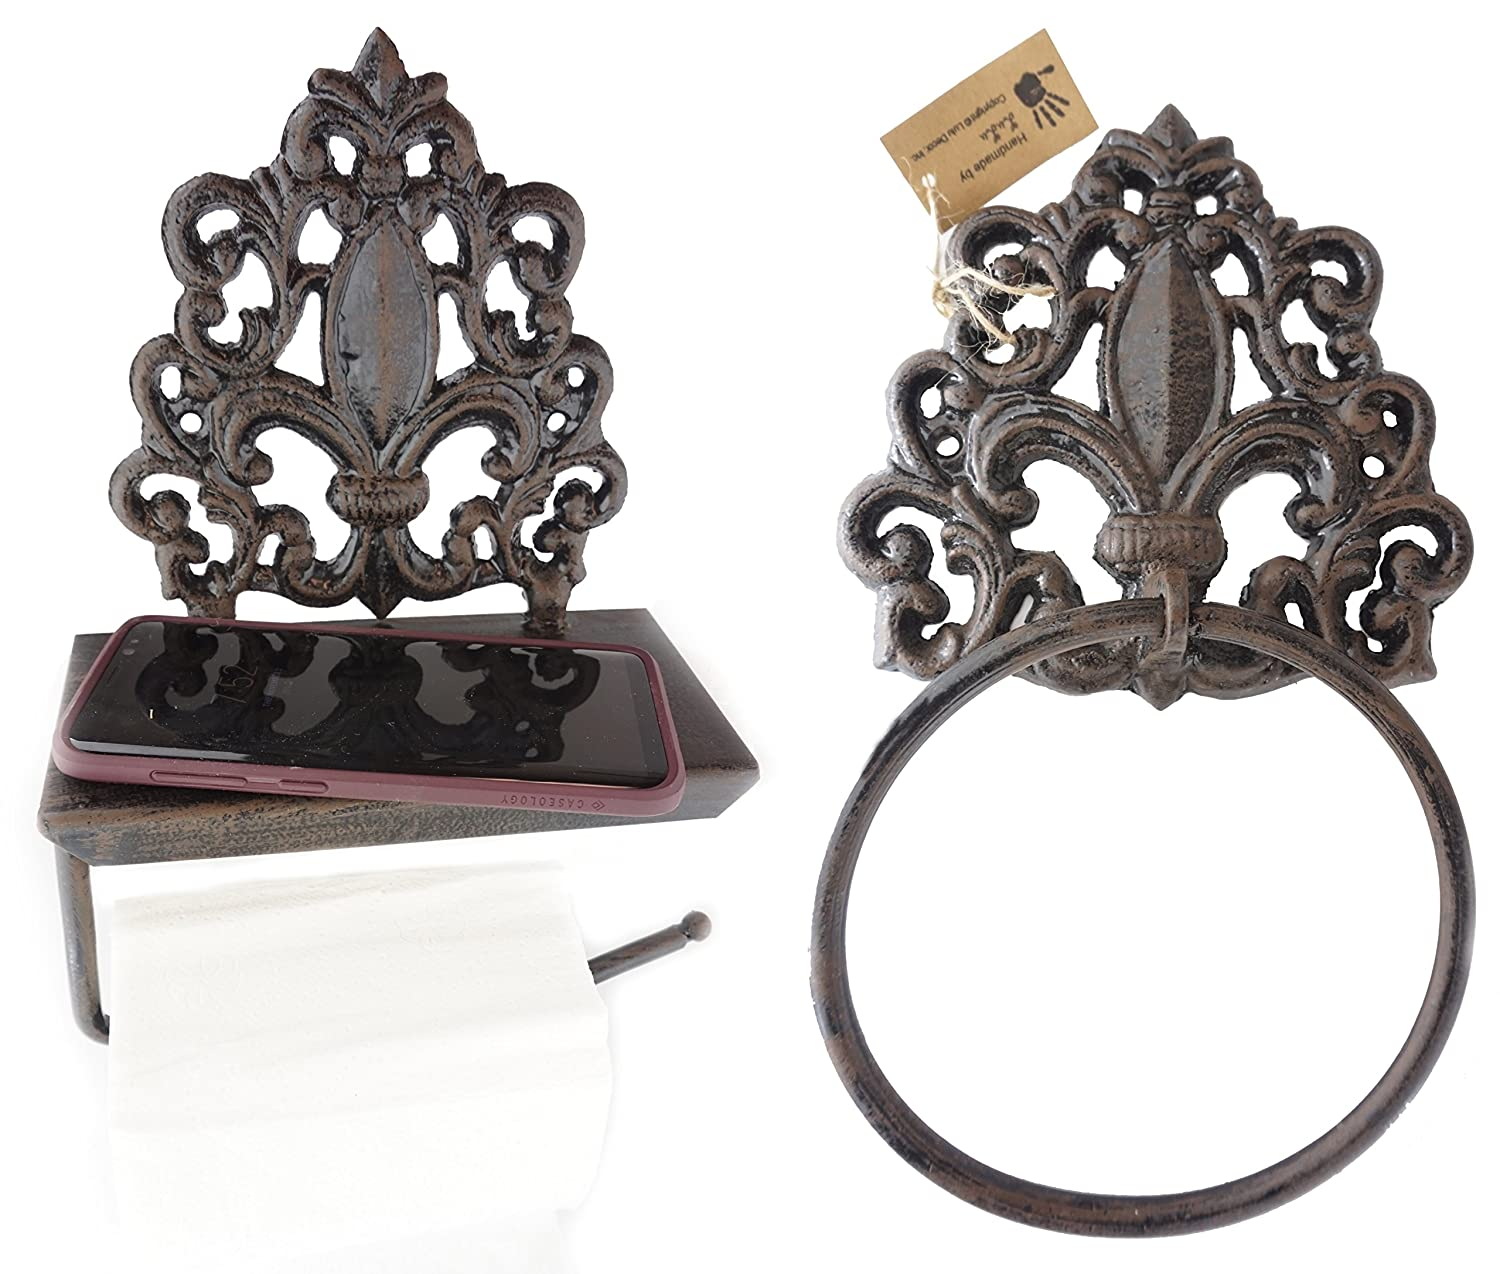 LuLu Decor, Set of Cast Iron Fleur De Lis Toilet Tissue holder & Towel Holder, designed with flat surface that can comfortably hold important belongings like cell phone, wallets, keys etc(Set)